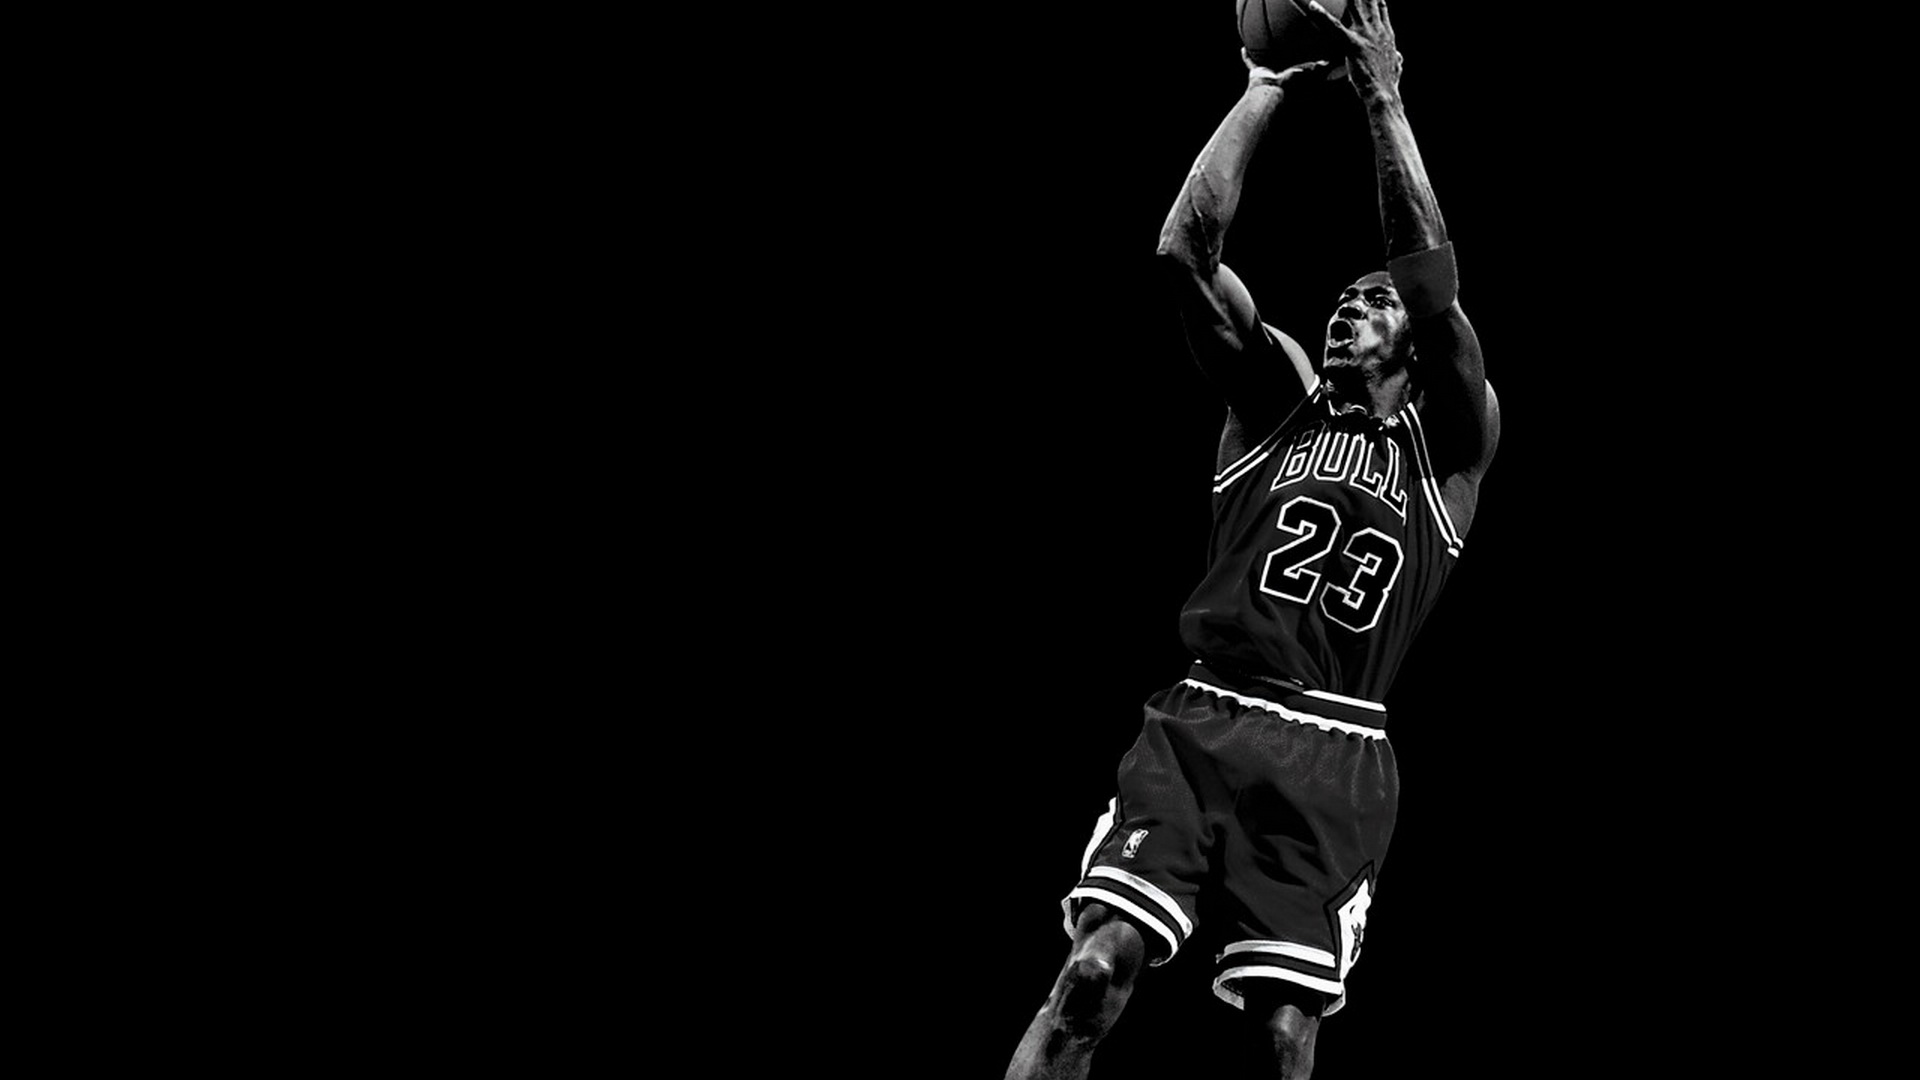 Michael Jordan 2013 Dunk HD Wallpaper Michael Jordan 2013 Dunk 1920x1080